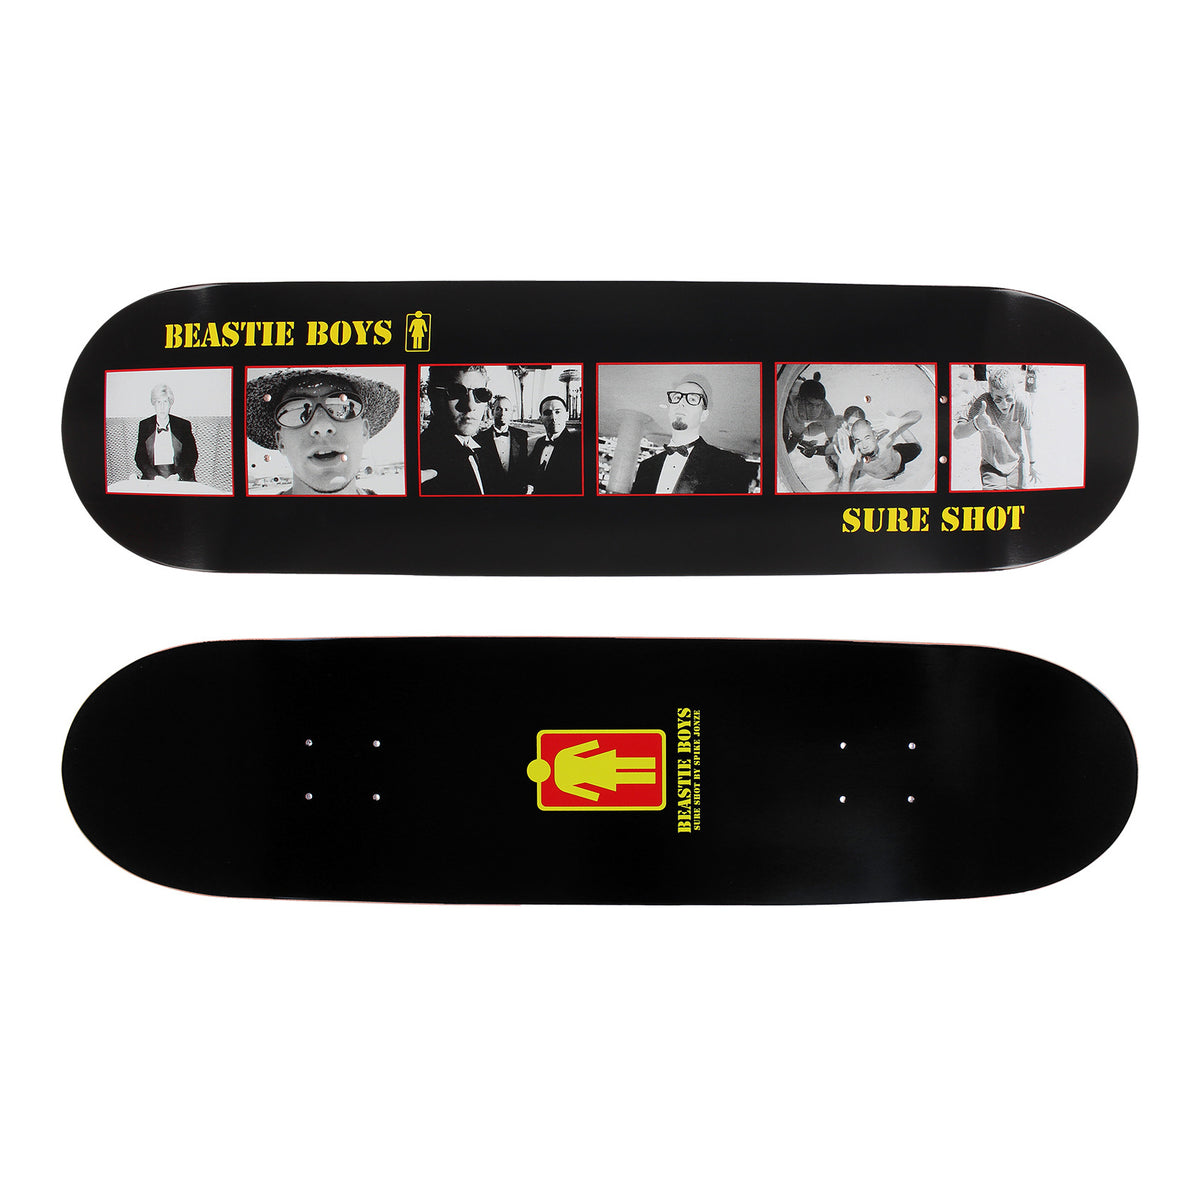 Beastie Boys: Sure Shot Skateboard Deck By Girl Skateboards / Spike Jonze - 8.25""